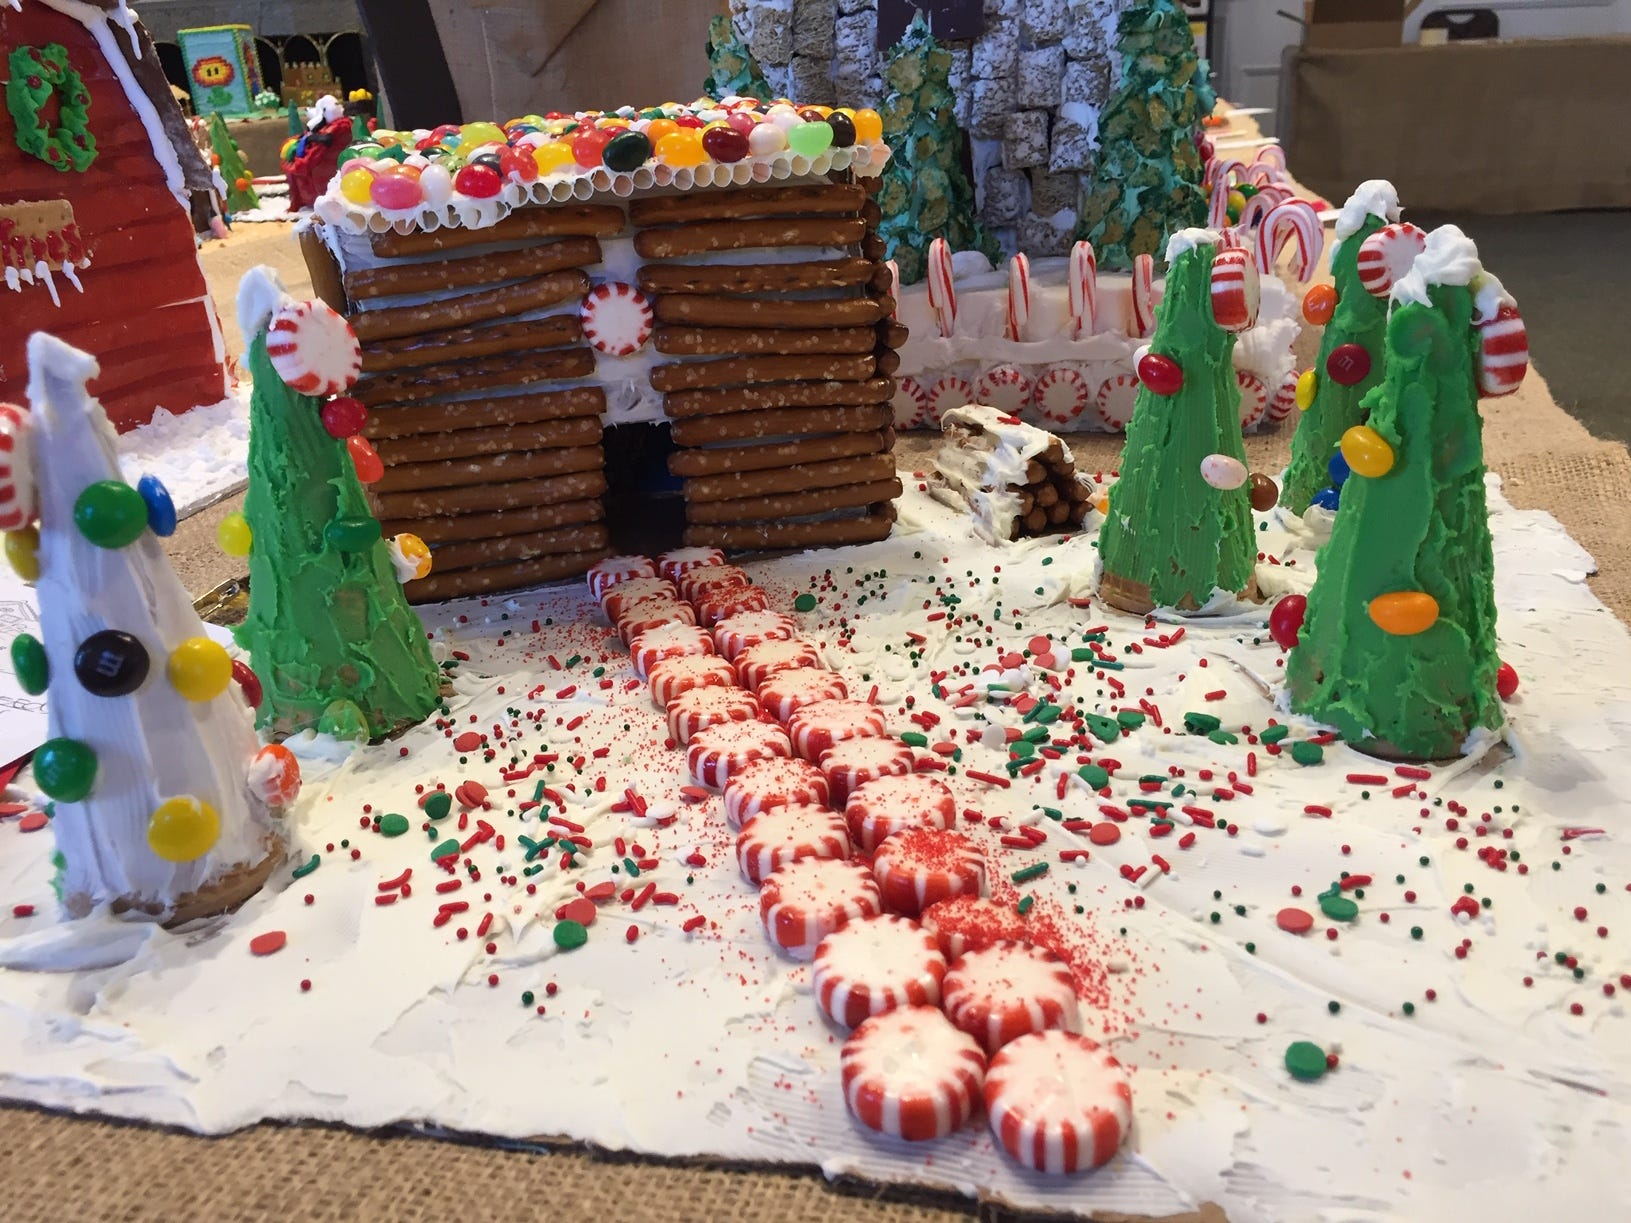 """The log cabin for kids with autism"" by Independence 360, Whippany, at the Gingerbread Wonderland at the Frelinghuysen Arboretum. Special Needs category."